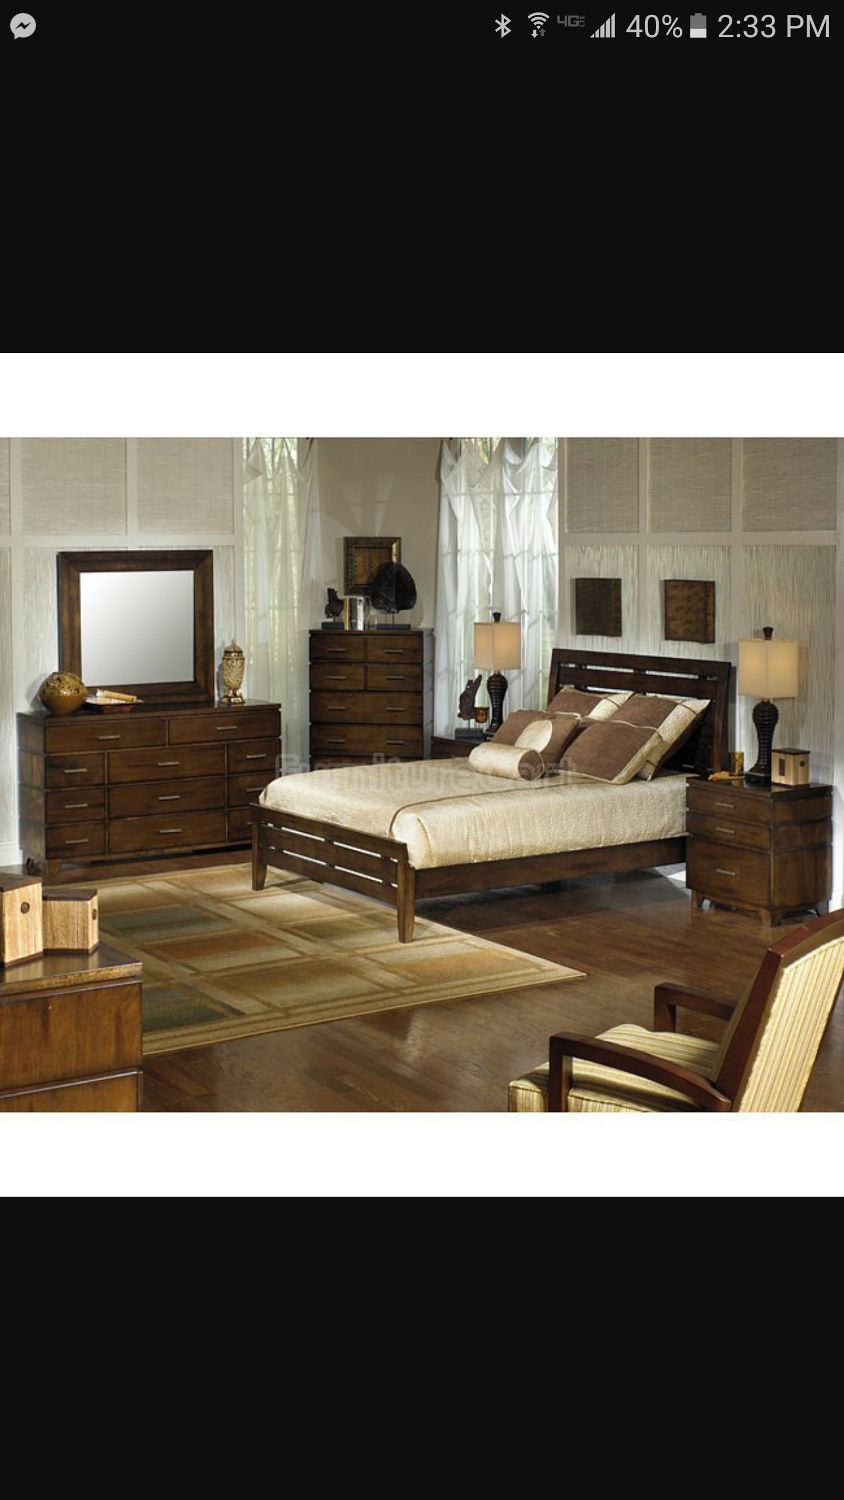 Best Queen Bedroom Set for sale in Charlotte, North Carolina for 2017